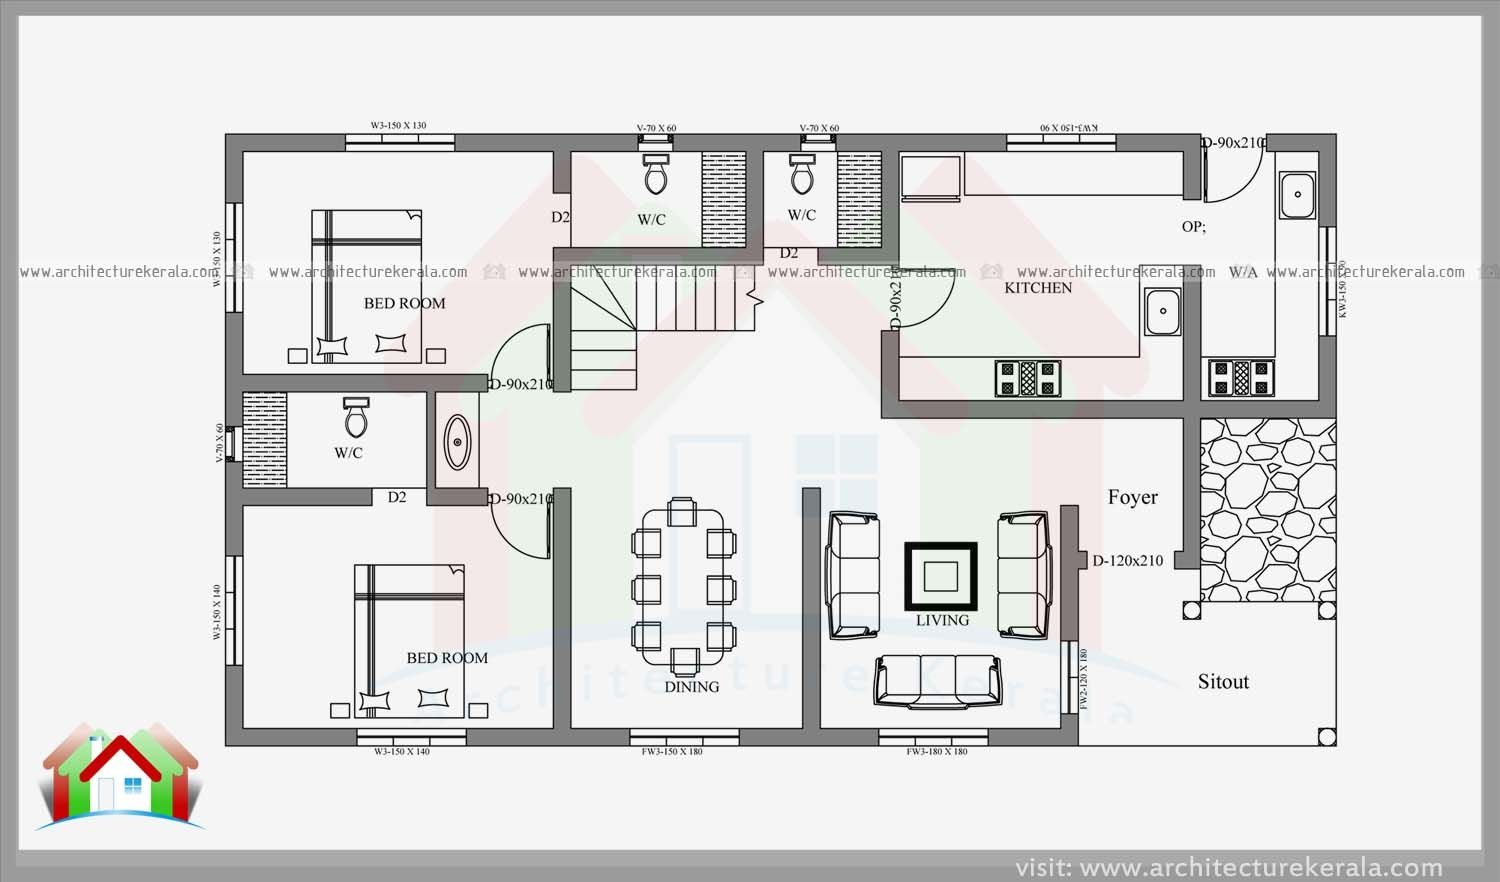 4 bedroom house plans kerala style architect it really